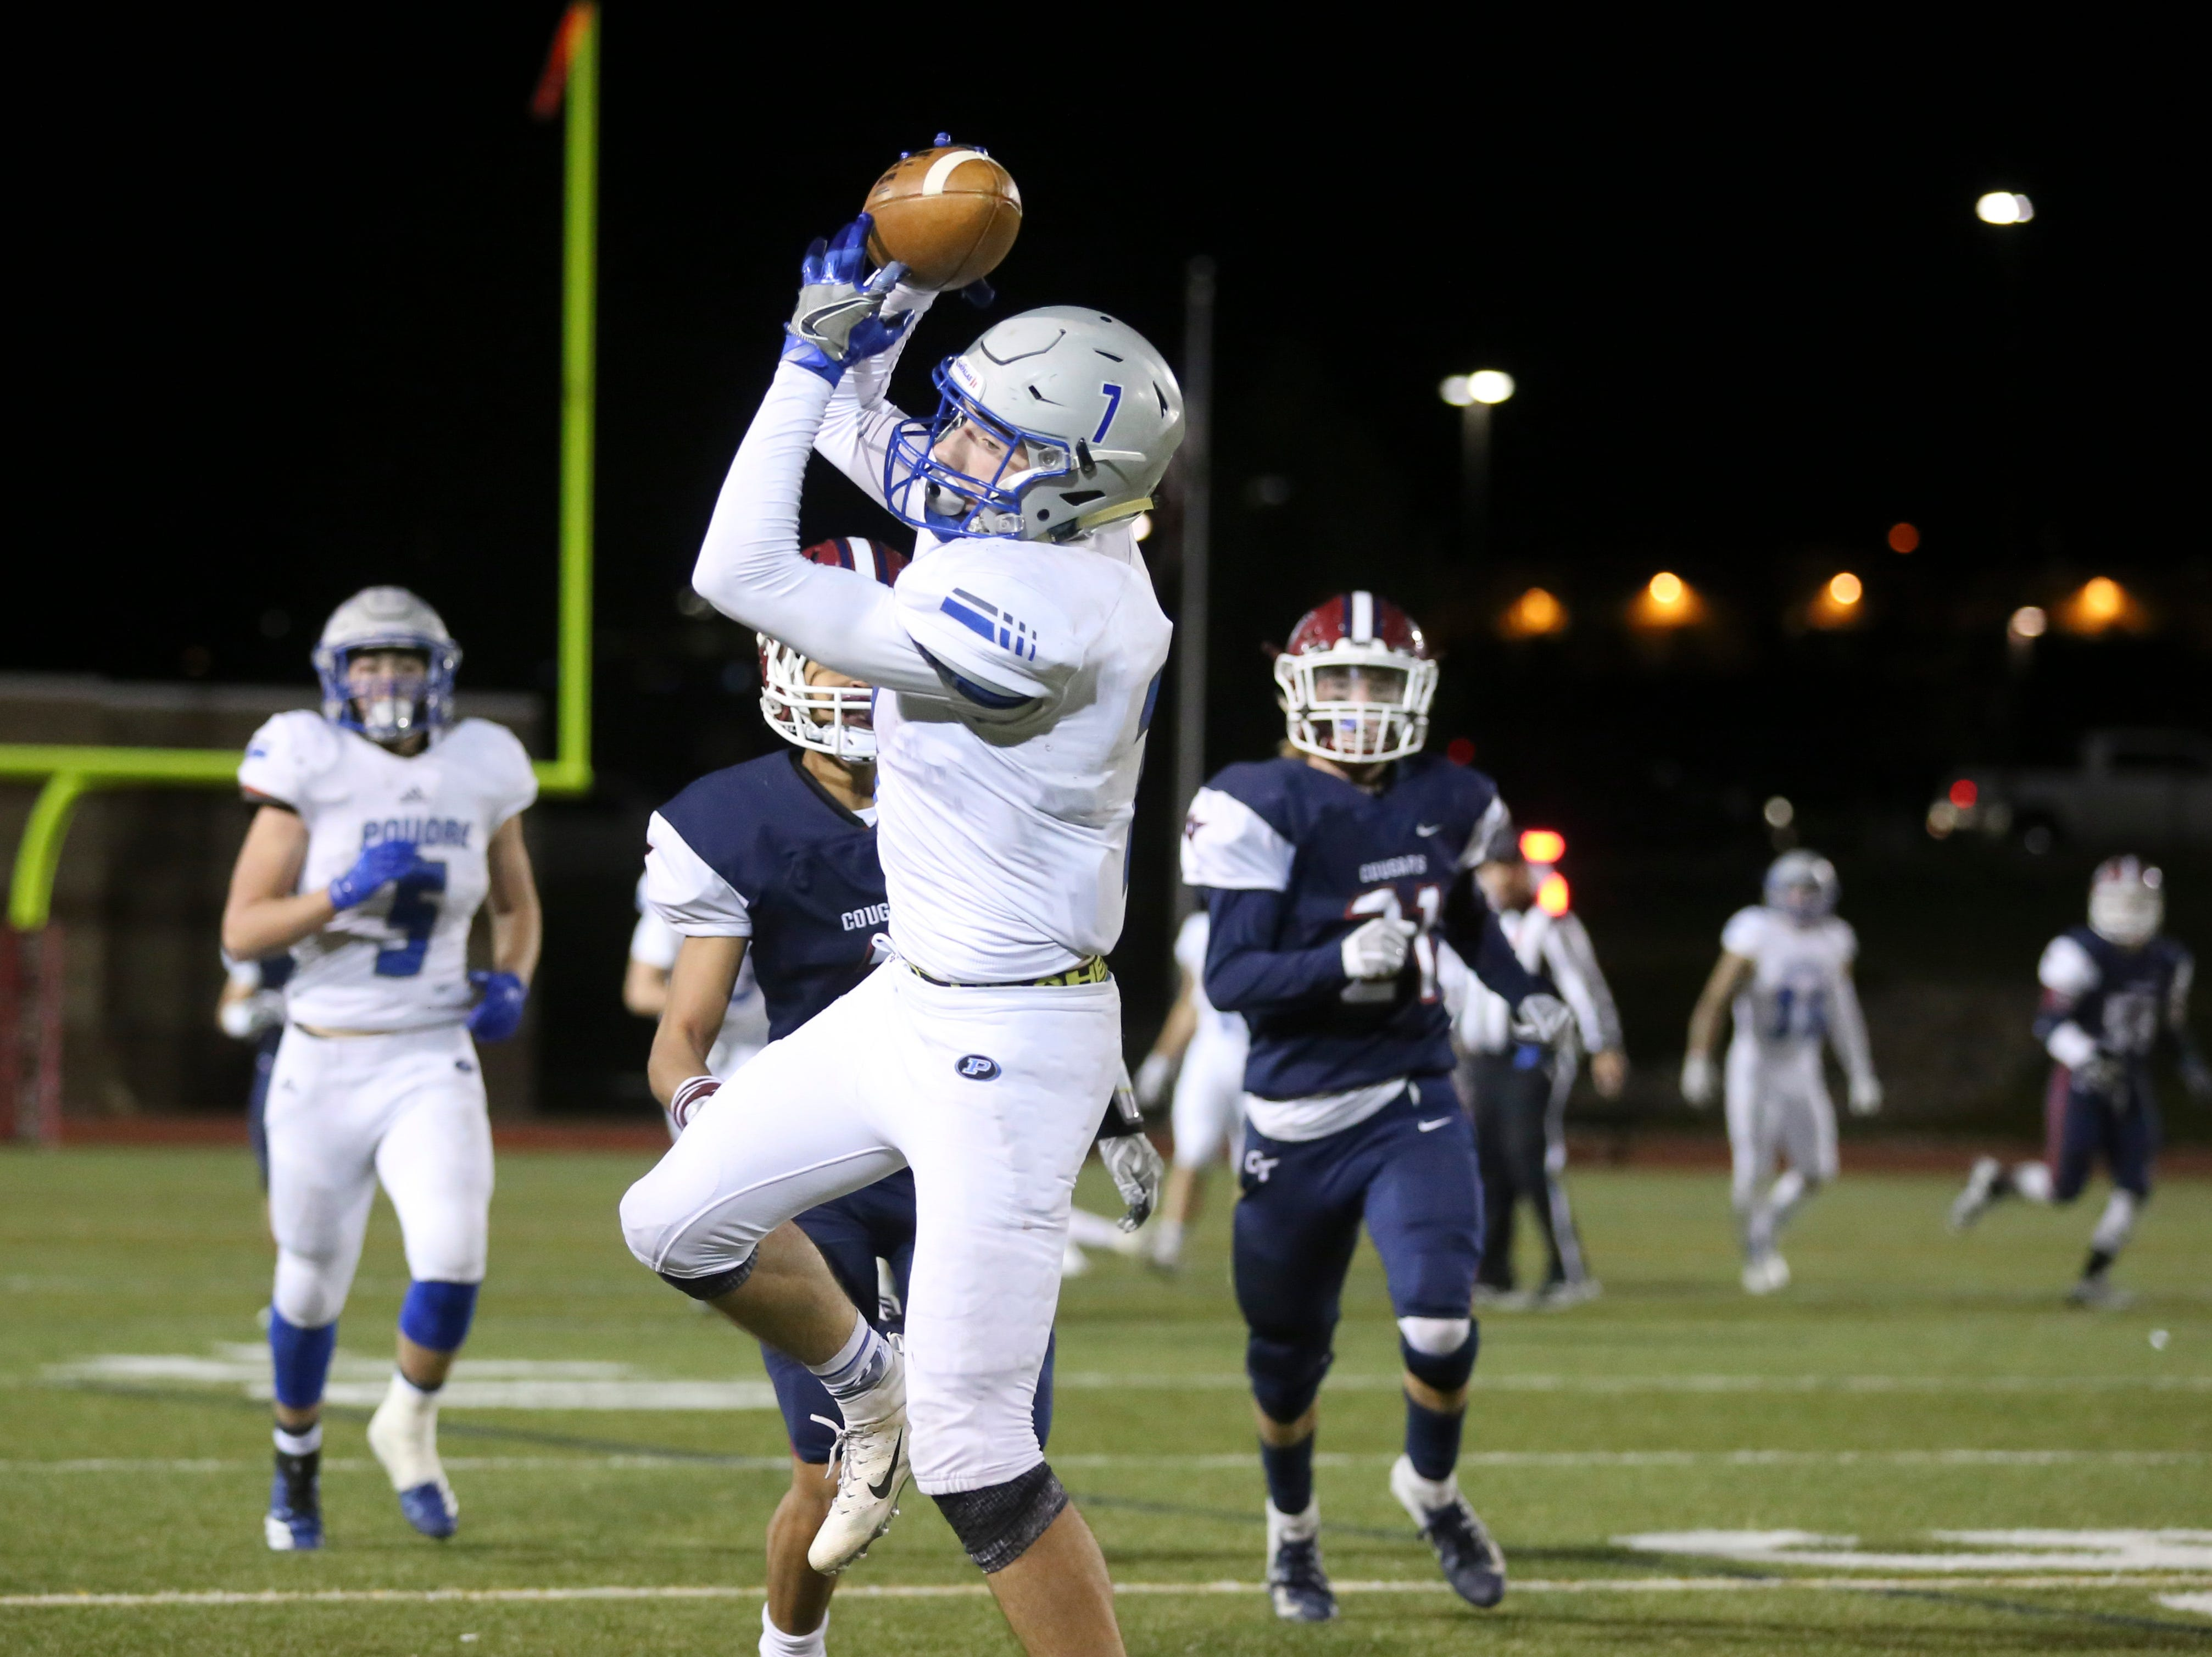 Poudre High School's Josiah Stribling catches a pass against Cherokee Trail High School on Friday evening in Aurora.